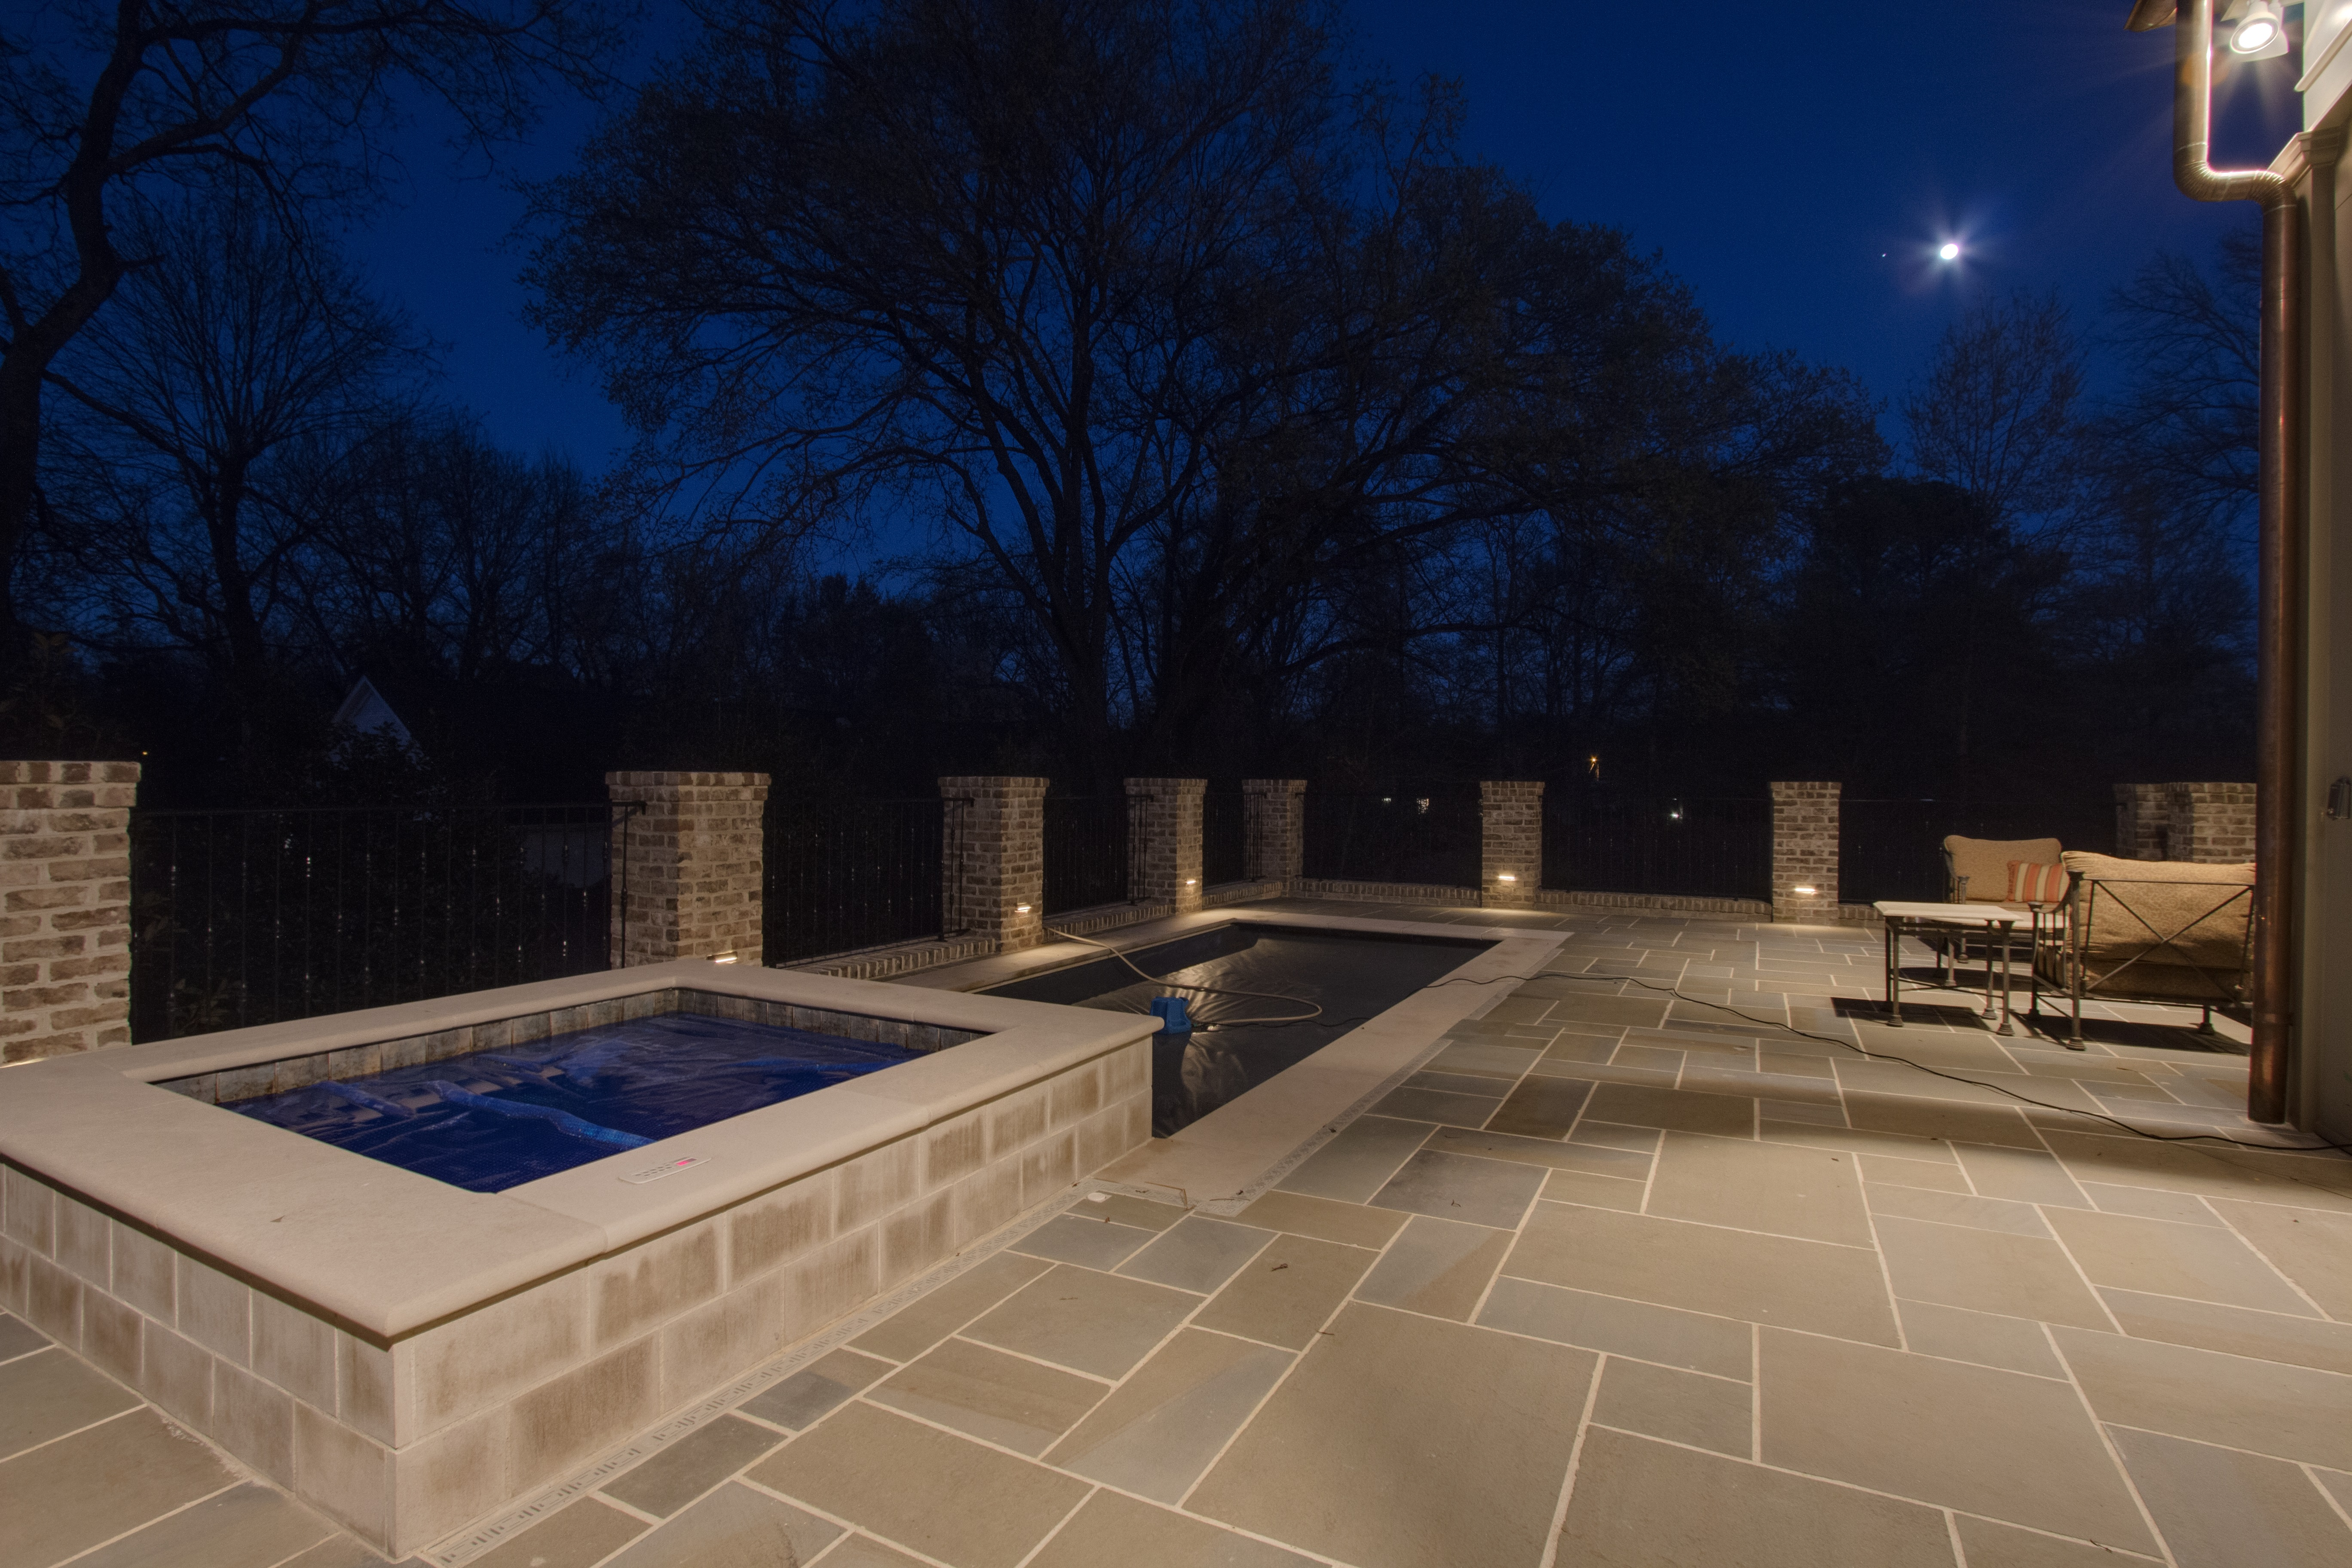 Outdoor lighting company lightscapes southern outdoor lighting - Belle Park Circle Outdoor Lighting In Franklin Tn Jpg